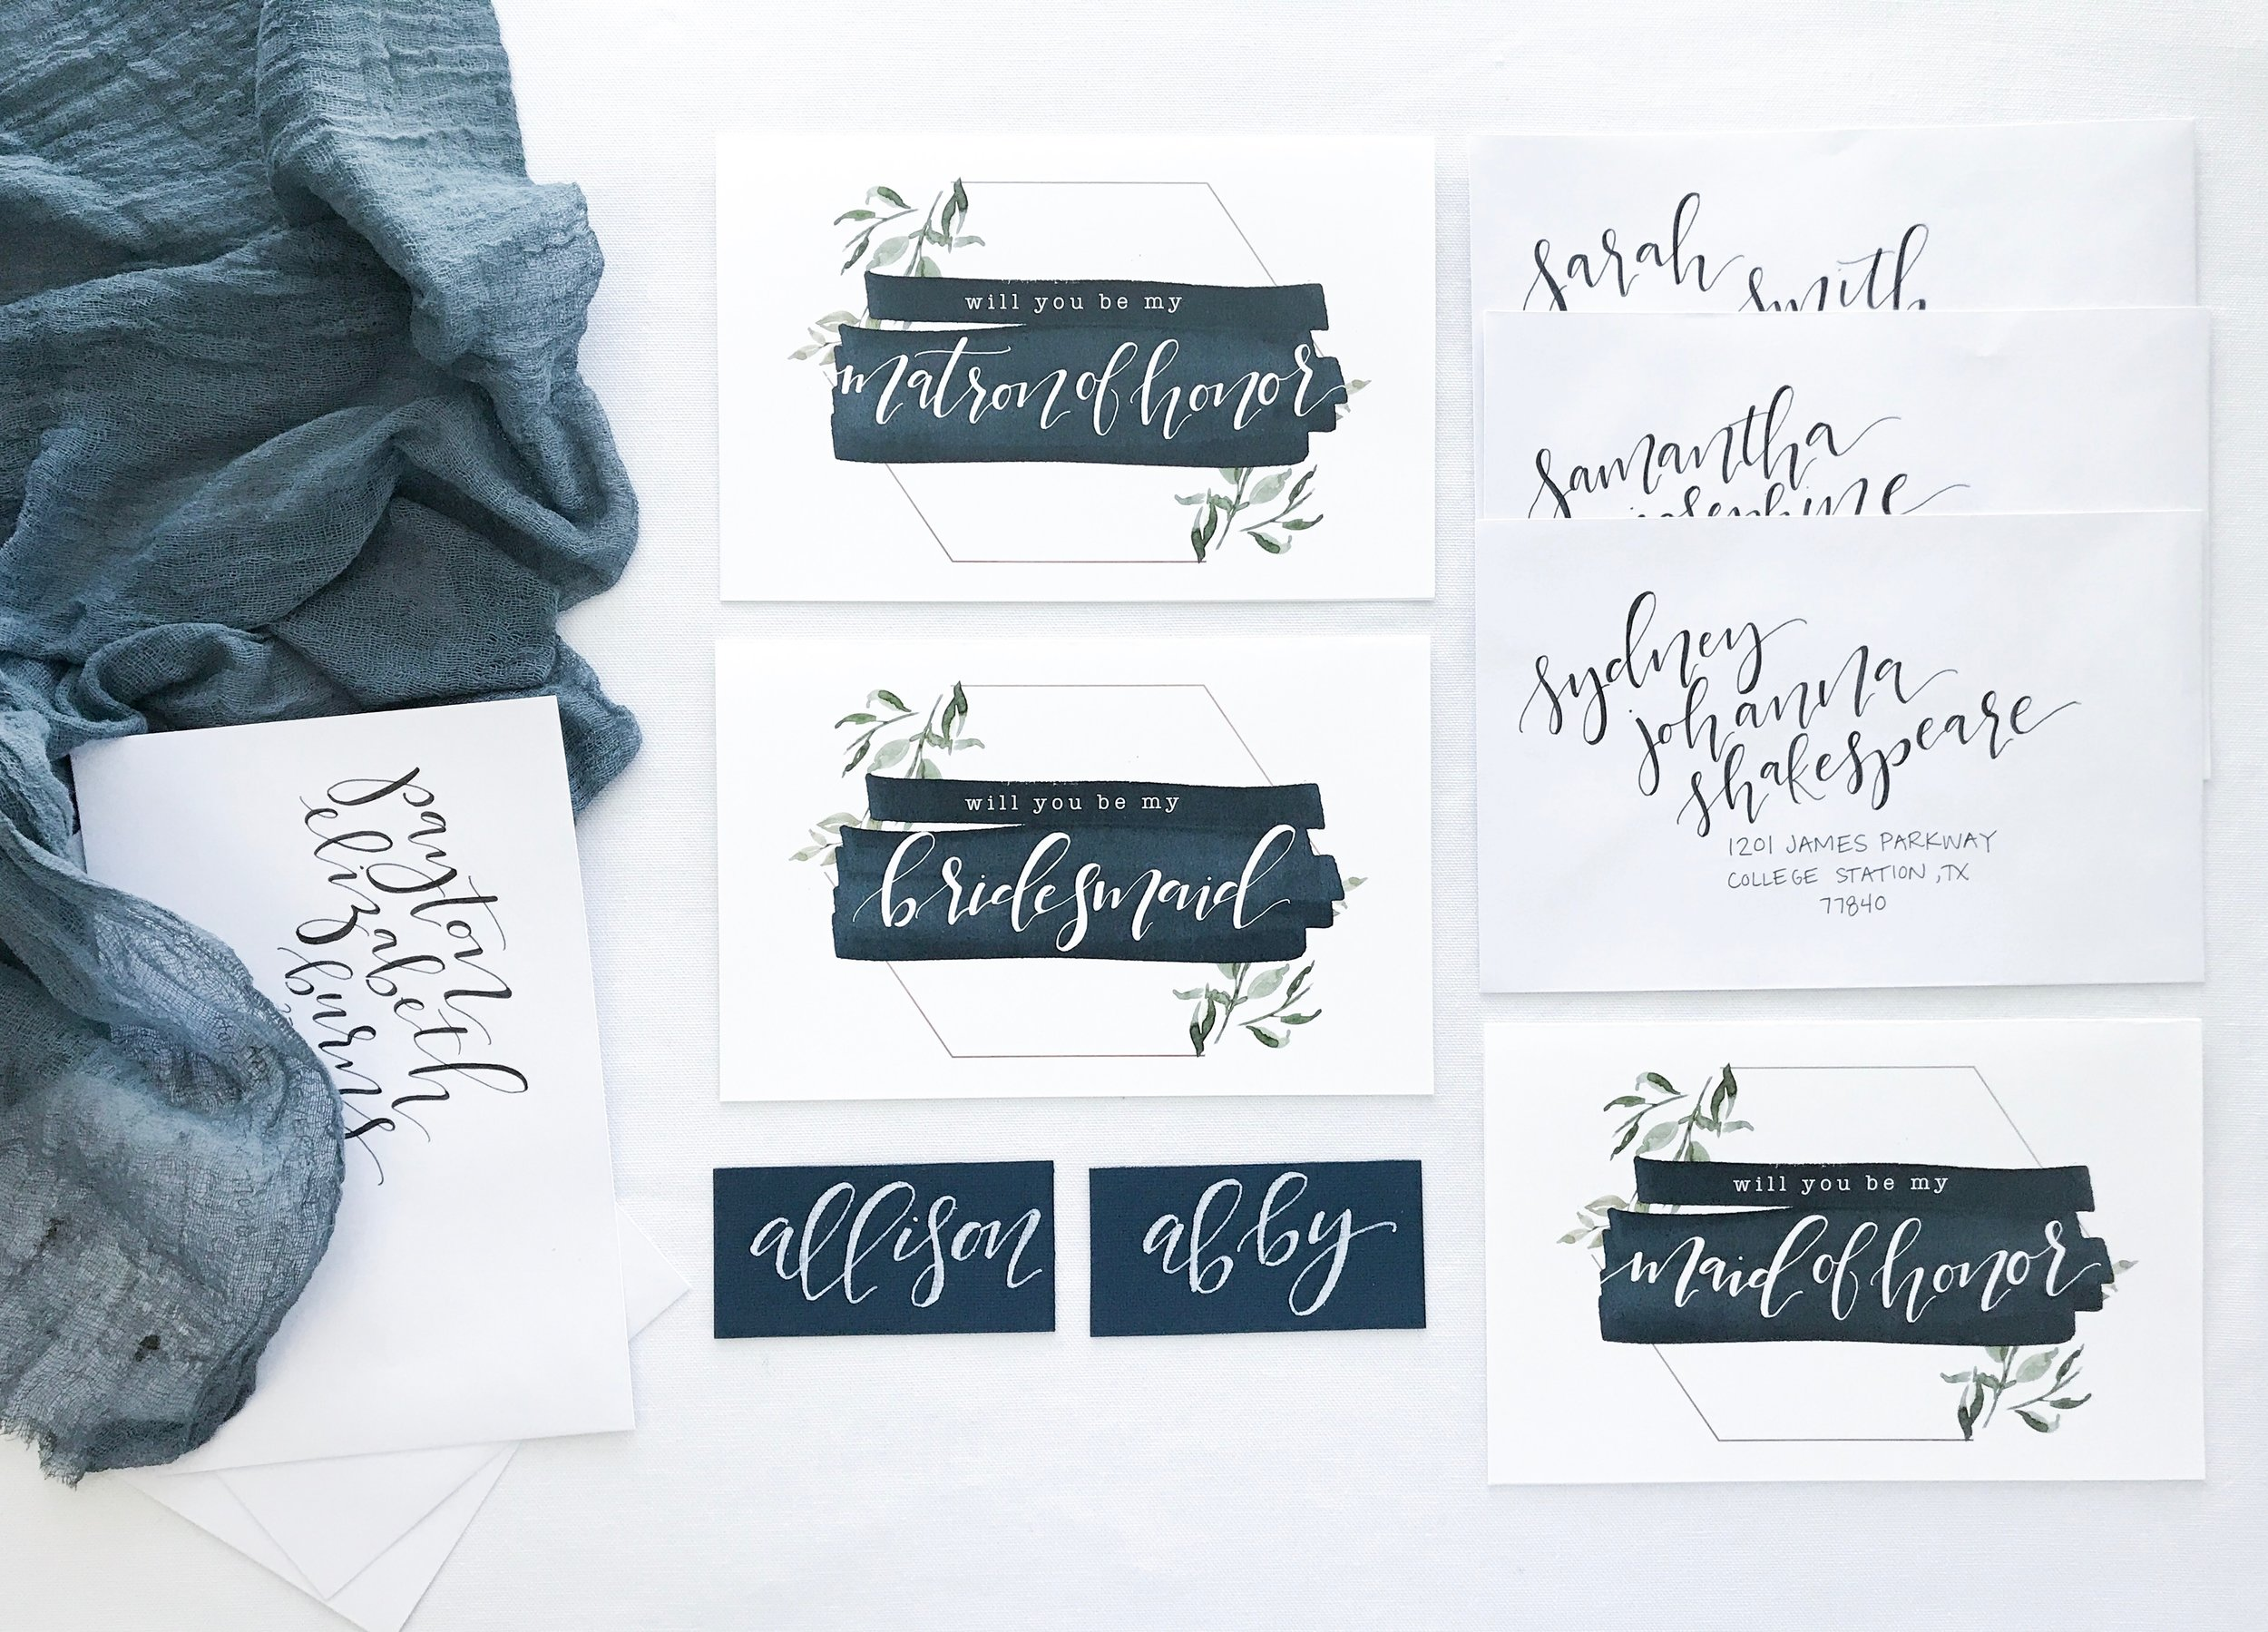 Matron/ Maid of Honor and Bridesmaid Asking Cards